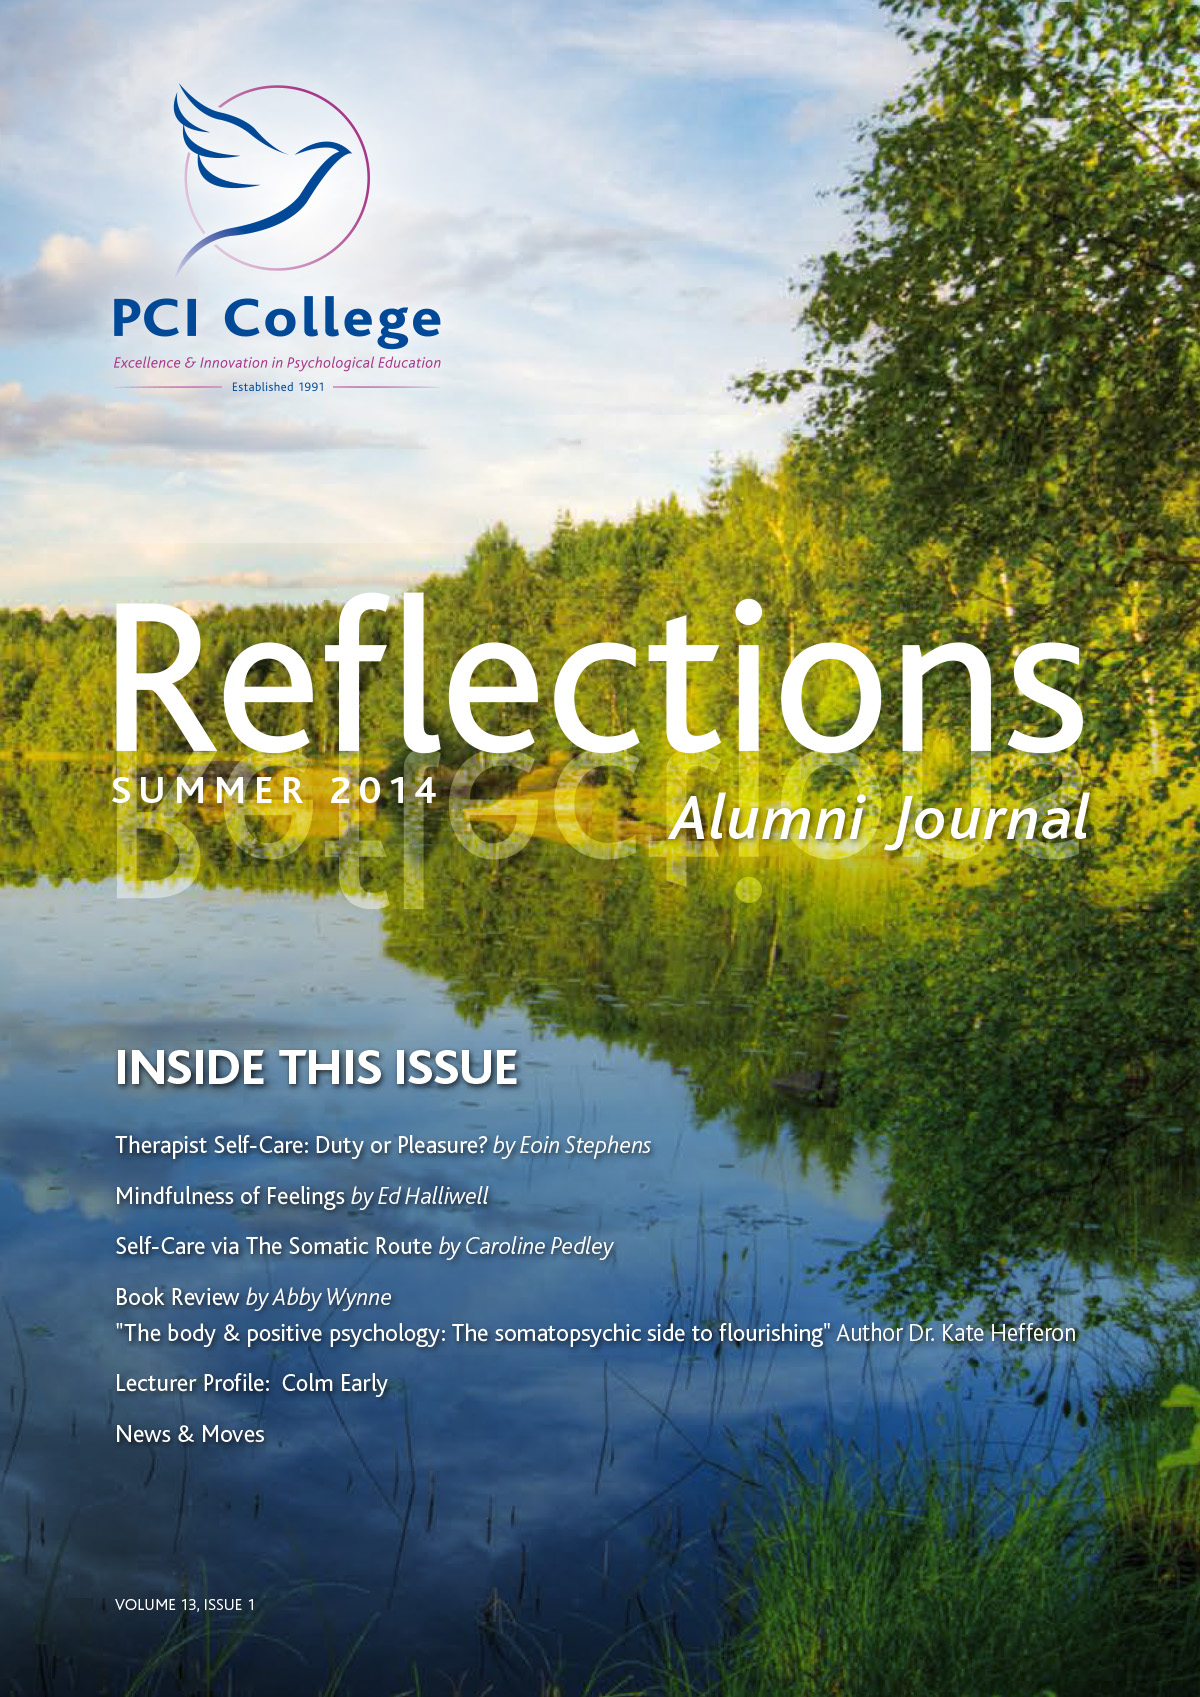 PCI College Reflections Newsletter Summer 2014